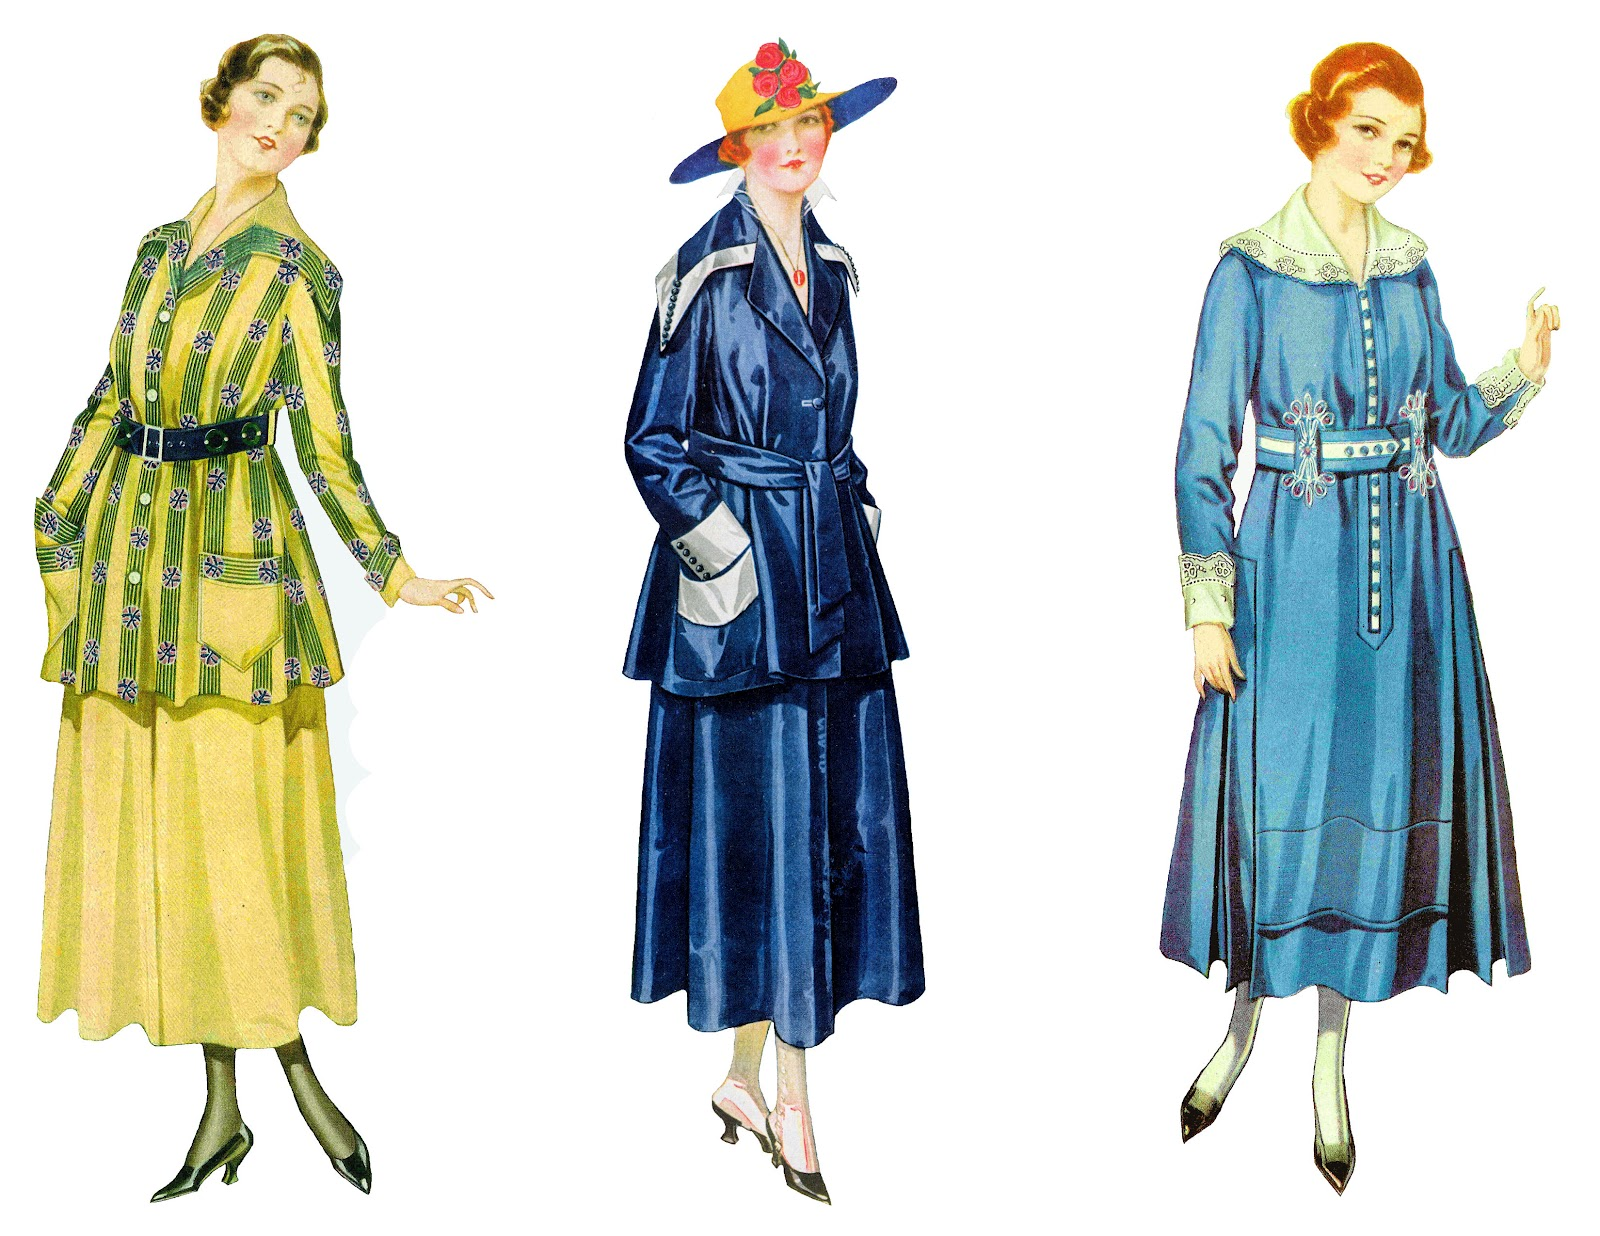 Vintage women s dress fashions from a 1915 clothes catalog aren t they